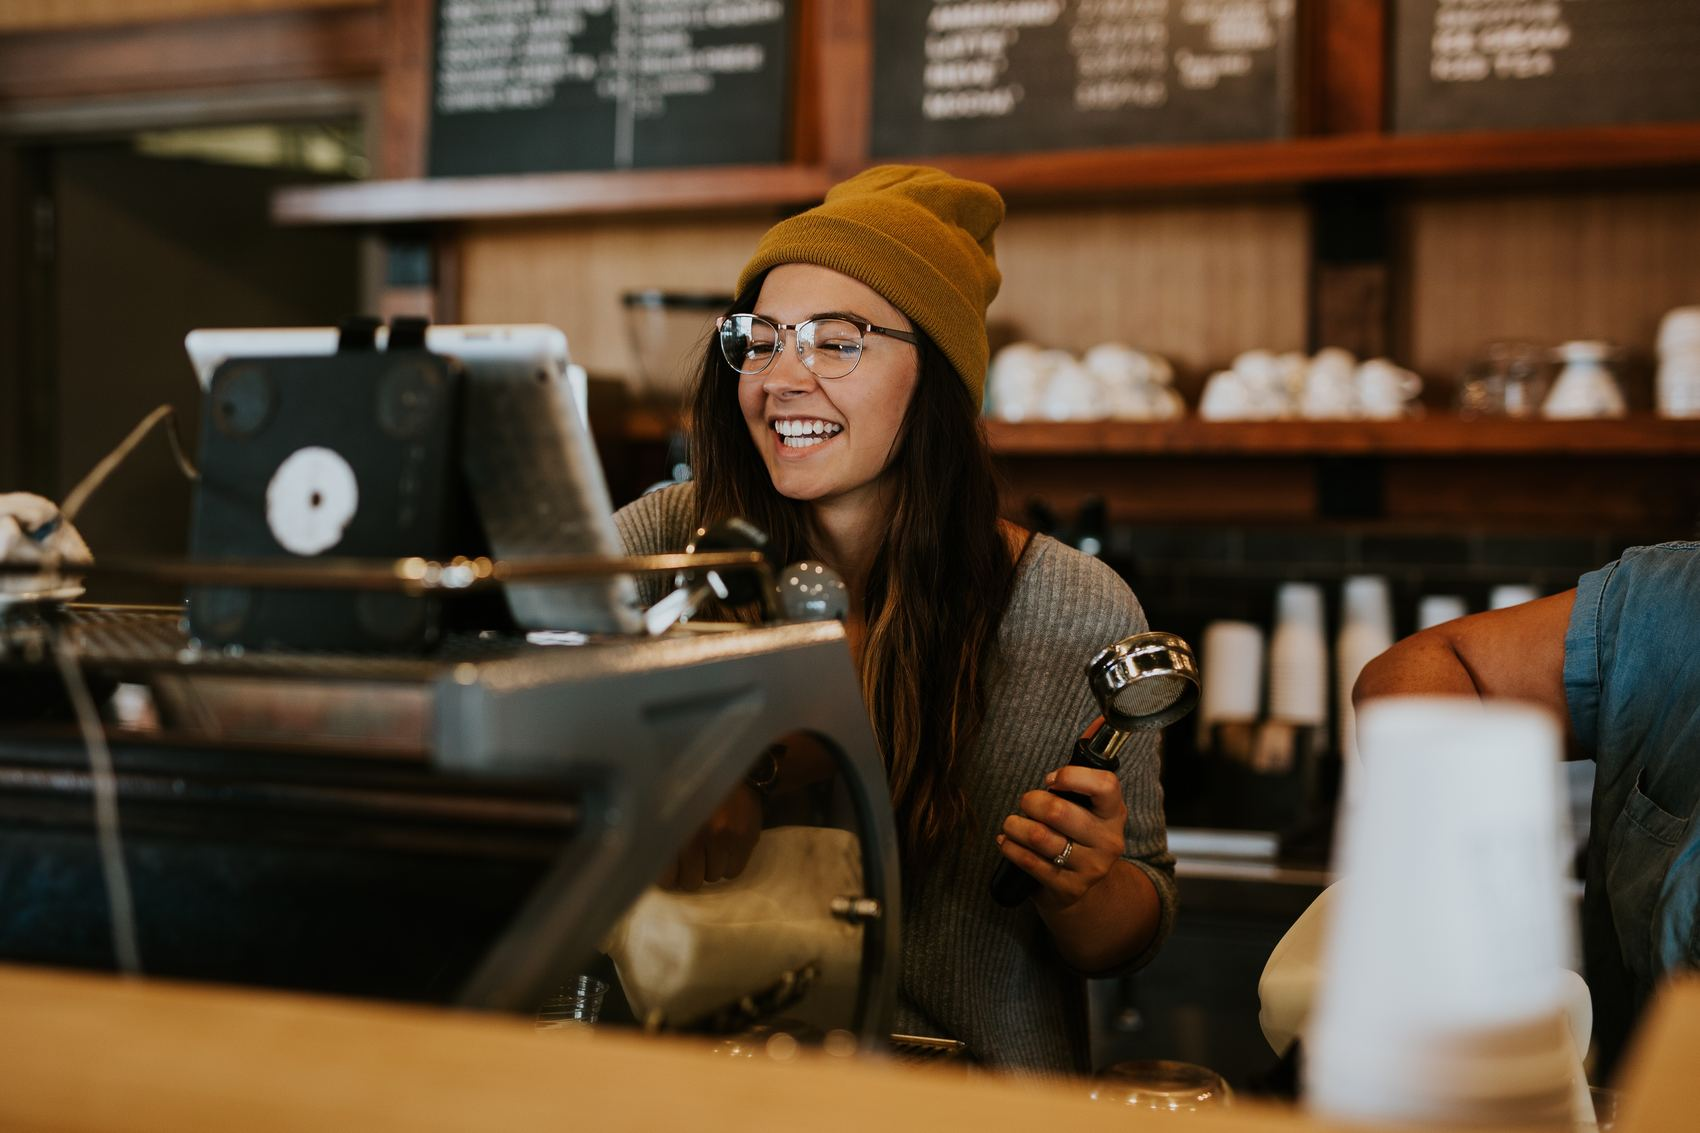 Barista smiling after a good employee onboarding process